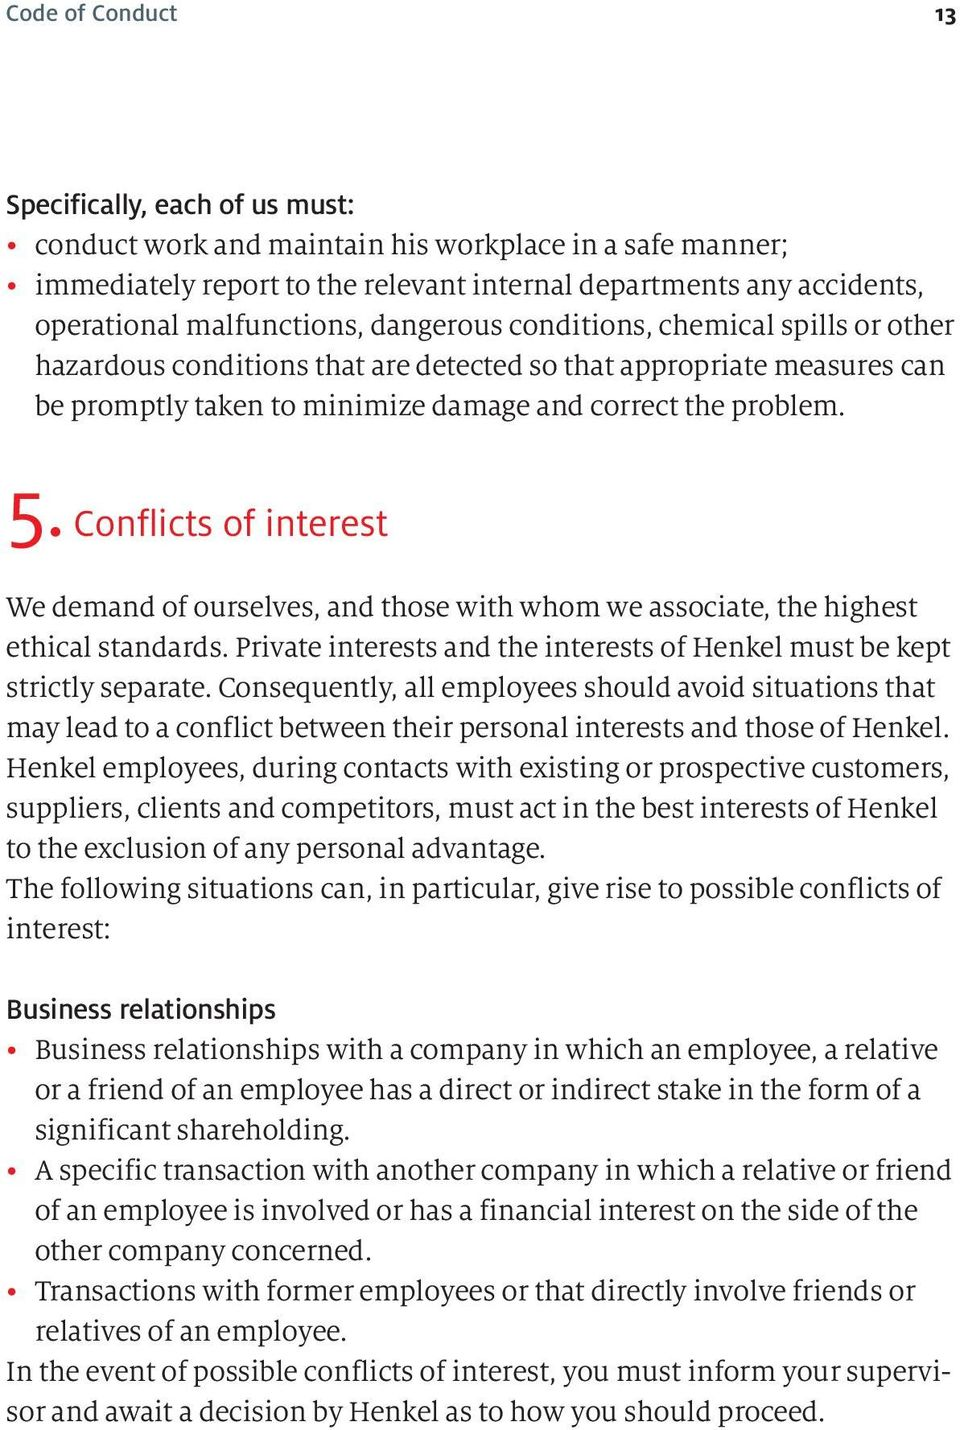 Conflicts of interest We demand of ourselves, and those with whom we associate, the highest ethical standards. Private interests and the interests of Henkel must be kept strictly separate.